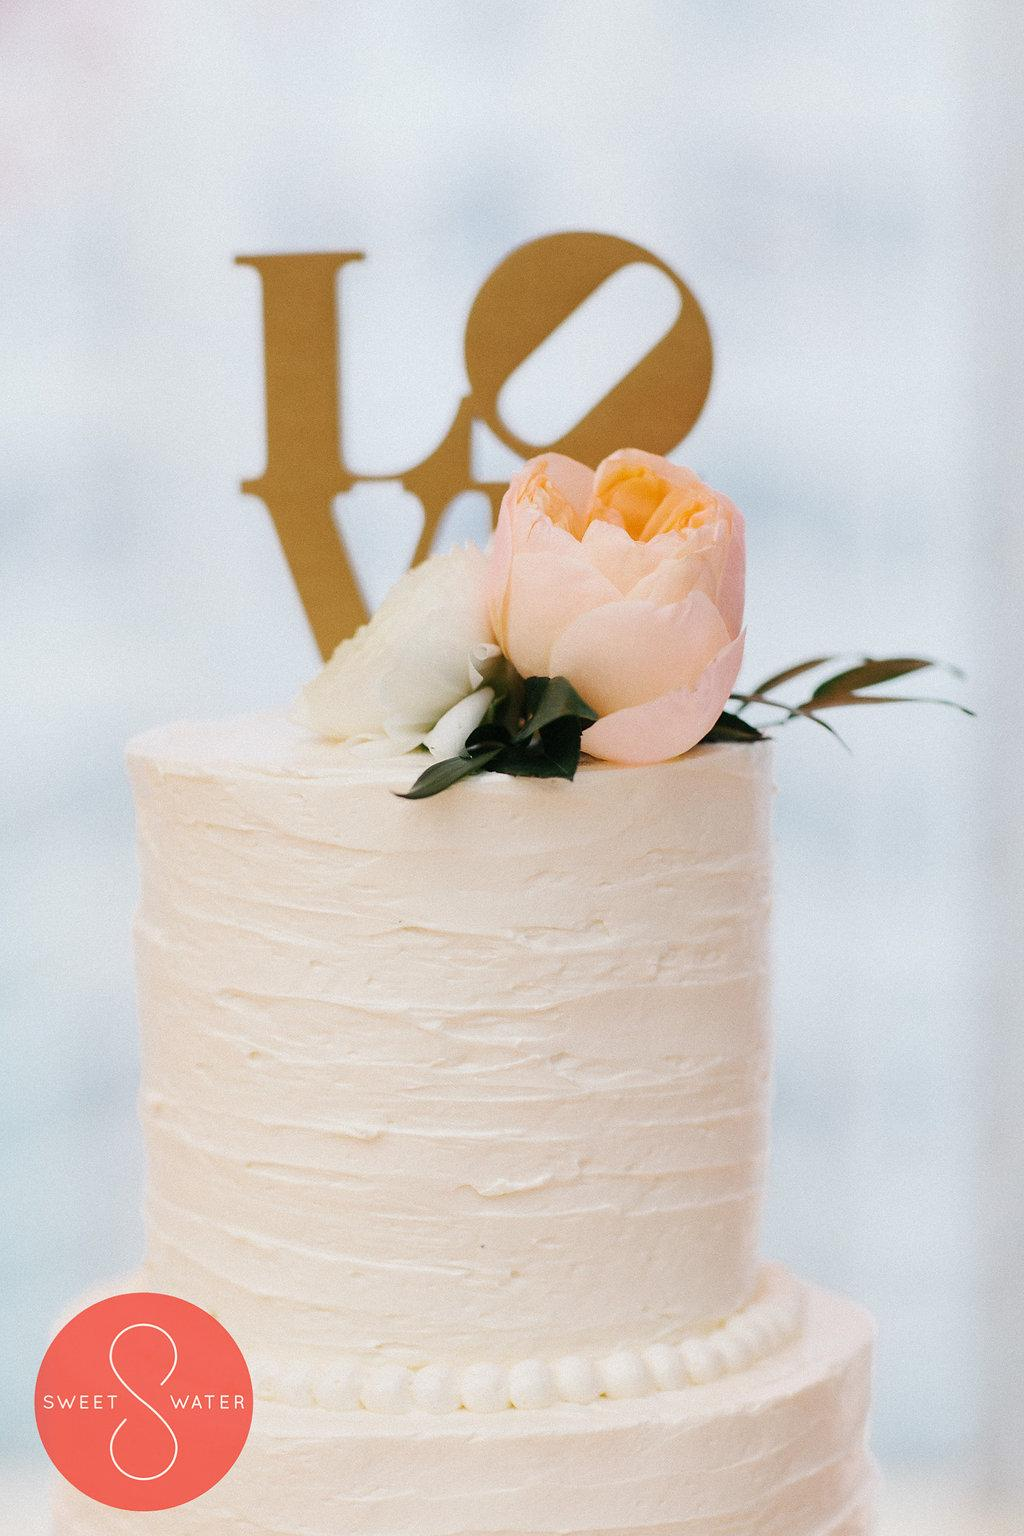 Philly-In-Love-I-Do-Wedding-Planning-Sweet-Water-Portraits-Wedding-Cake